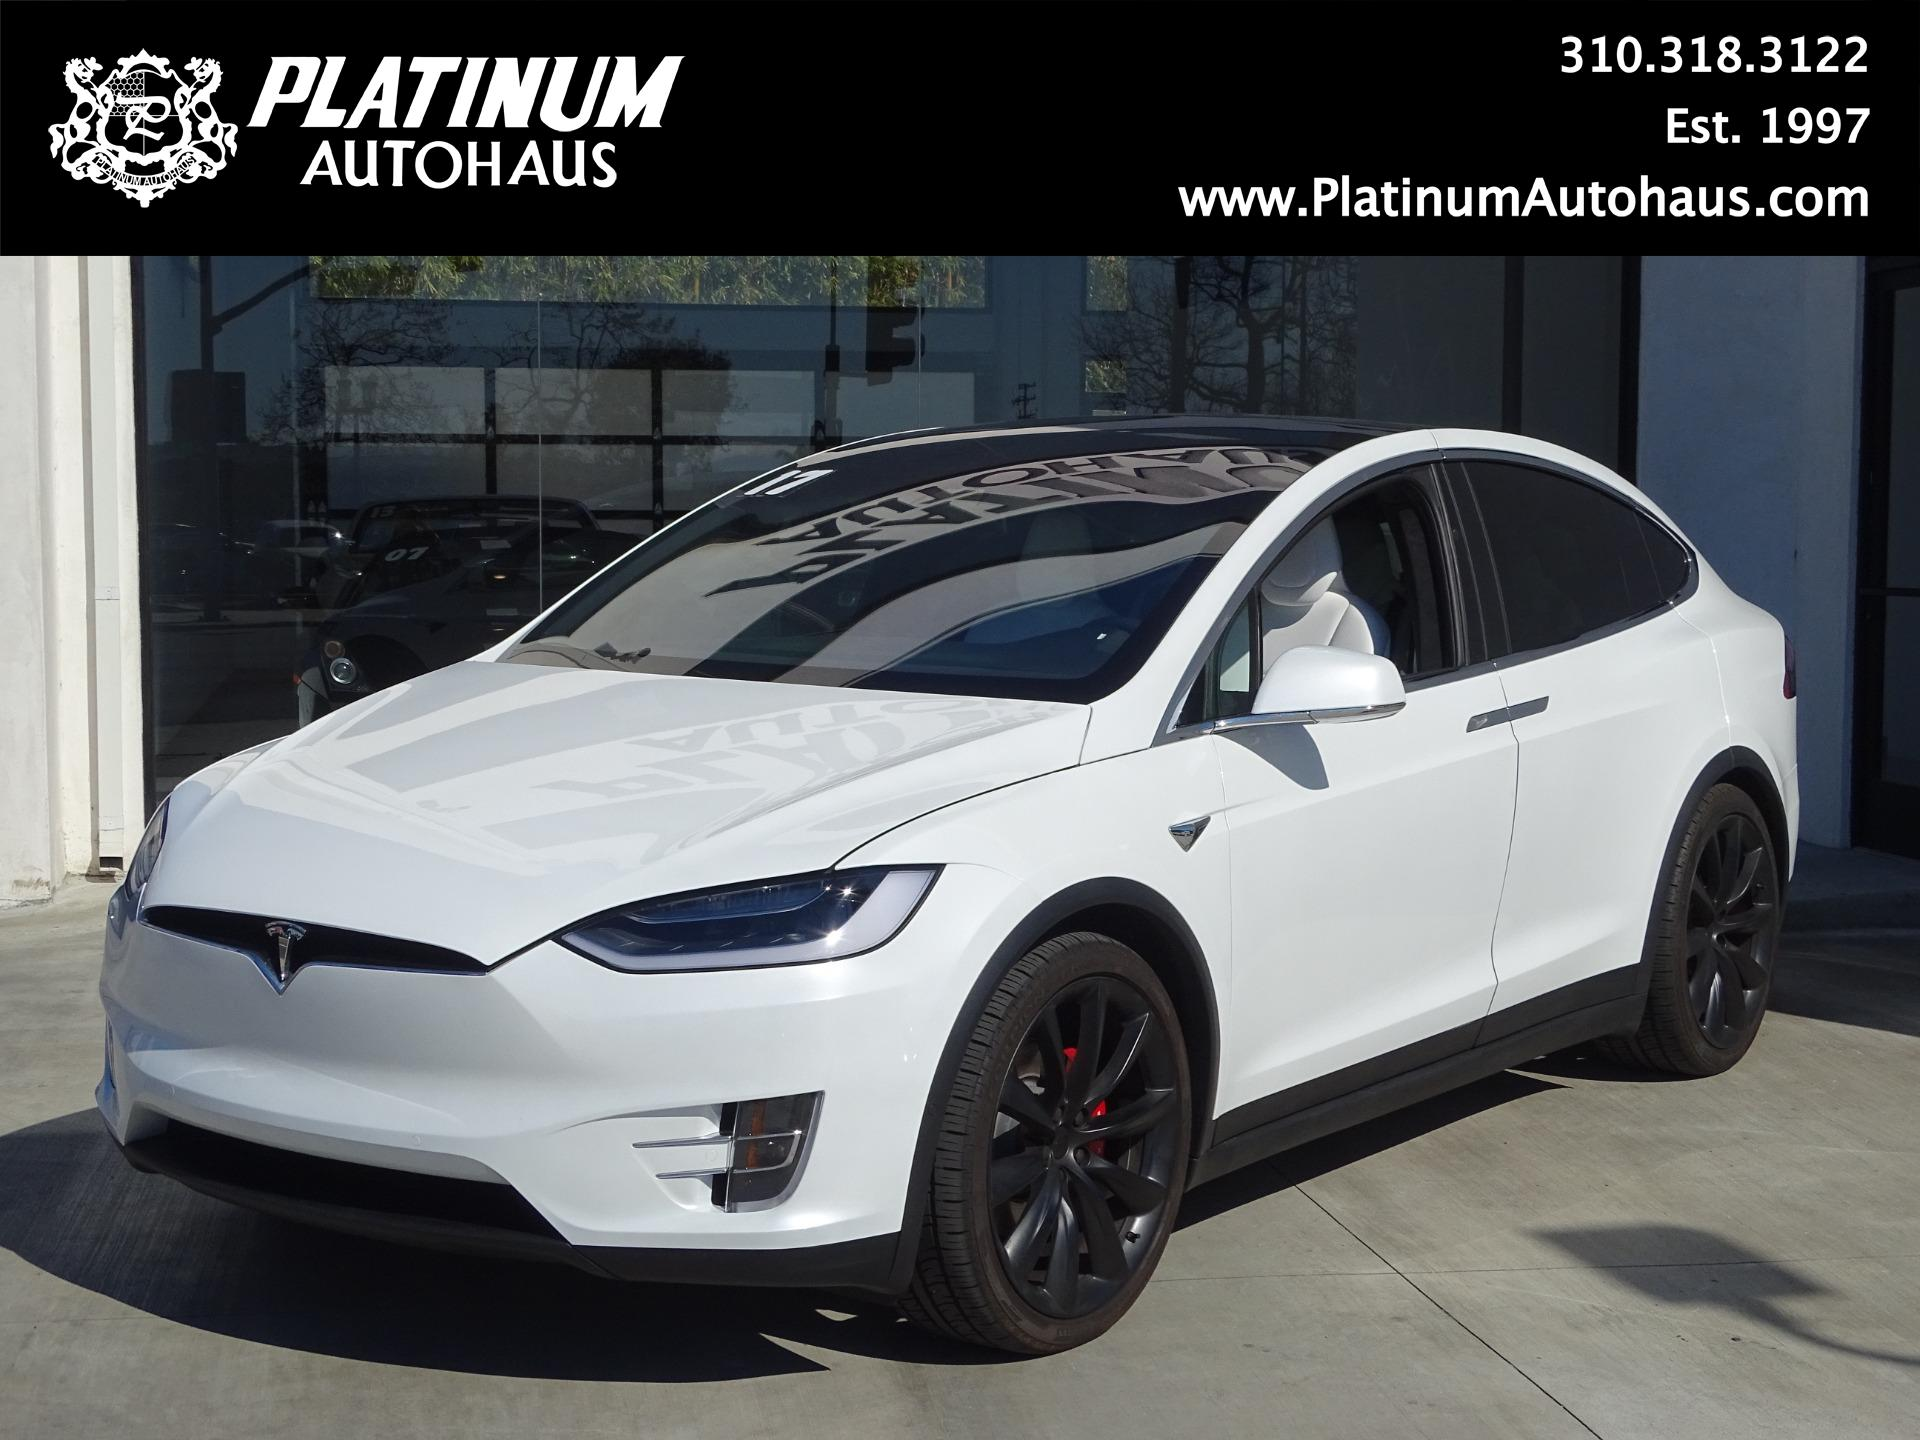 2017 Tesla Model X P100D Stock # 055214 for sale near Redondo Beach